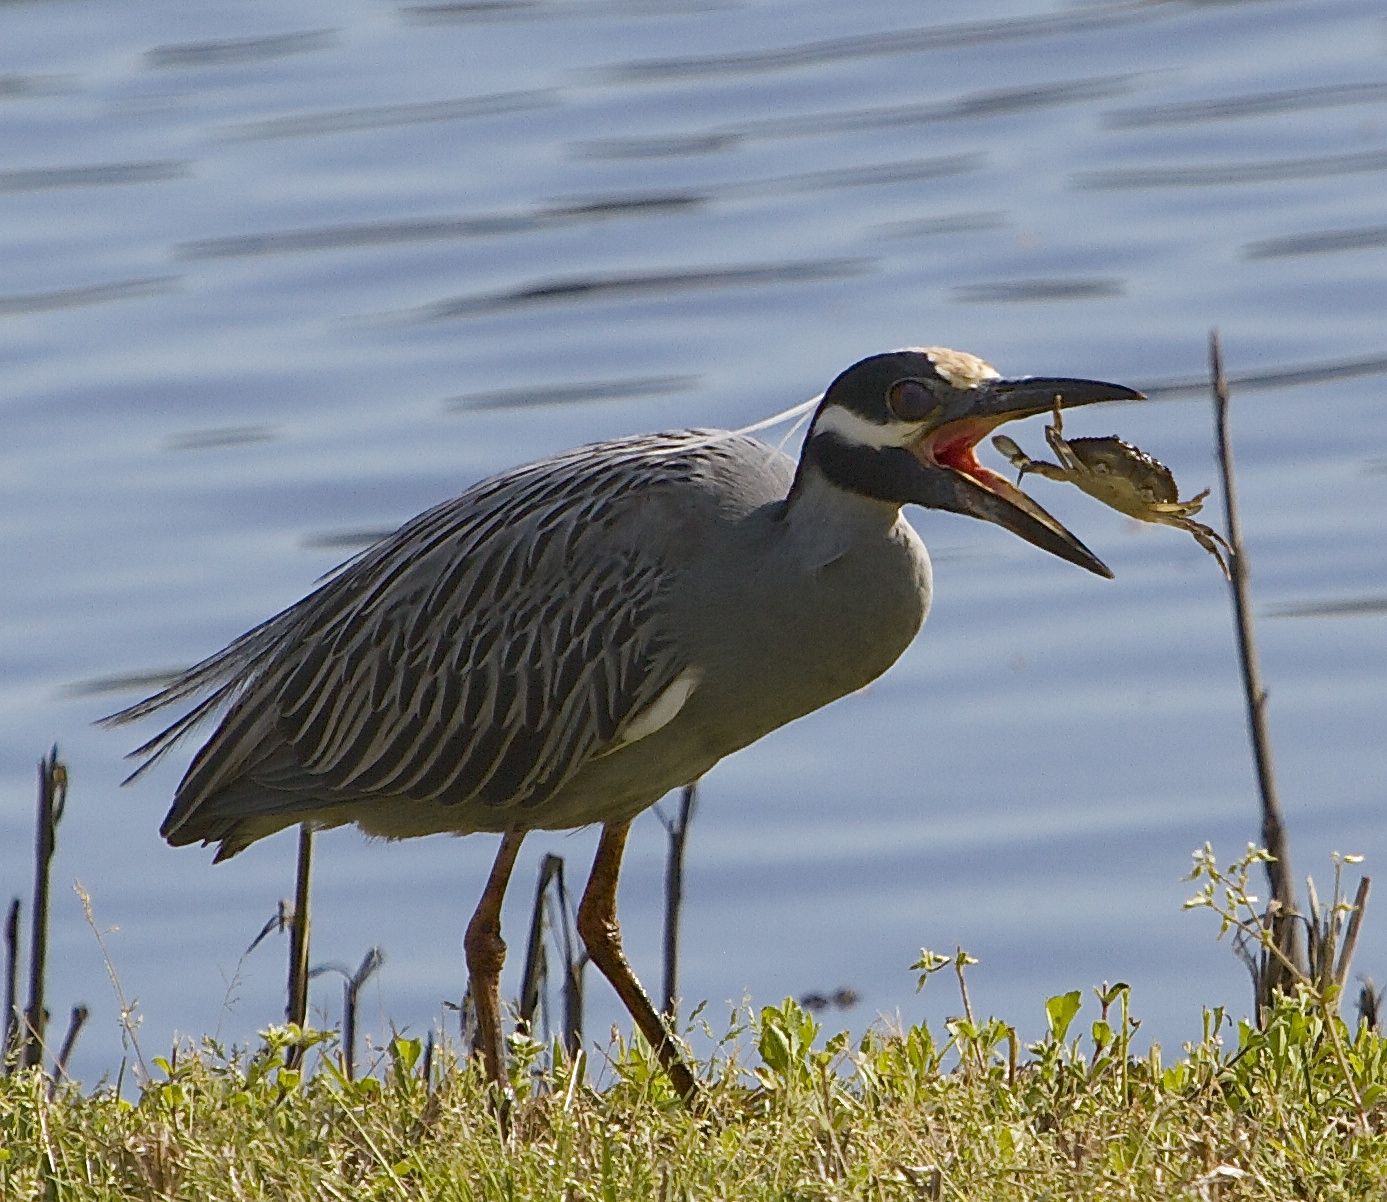 George, the Yellow Crowned Night Heron enjoys a Crab sandwich.